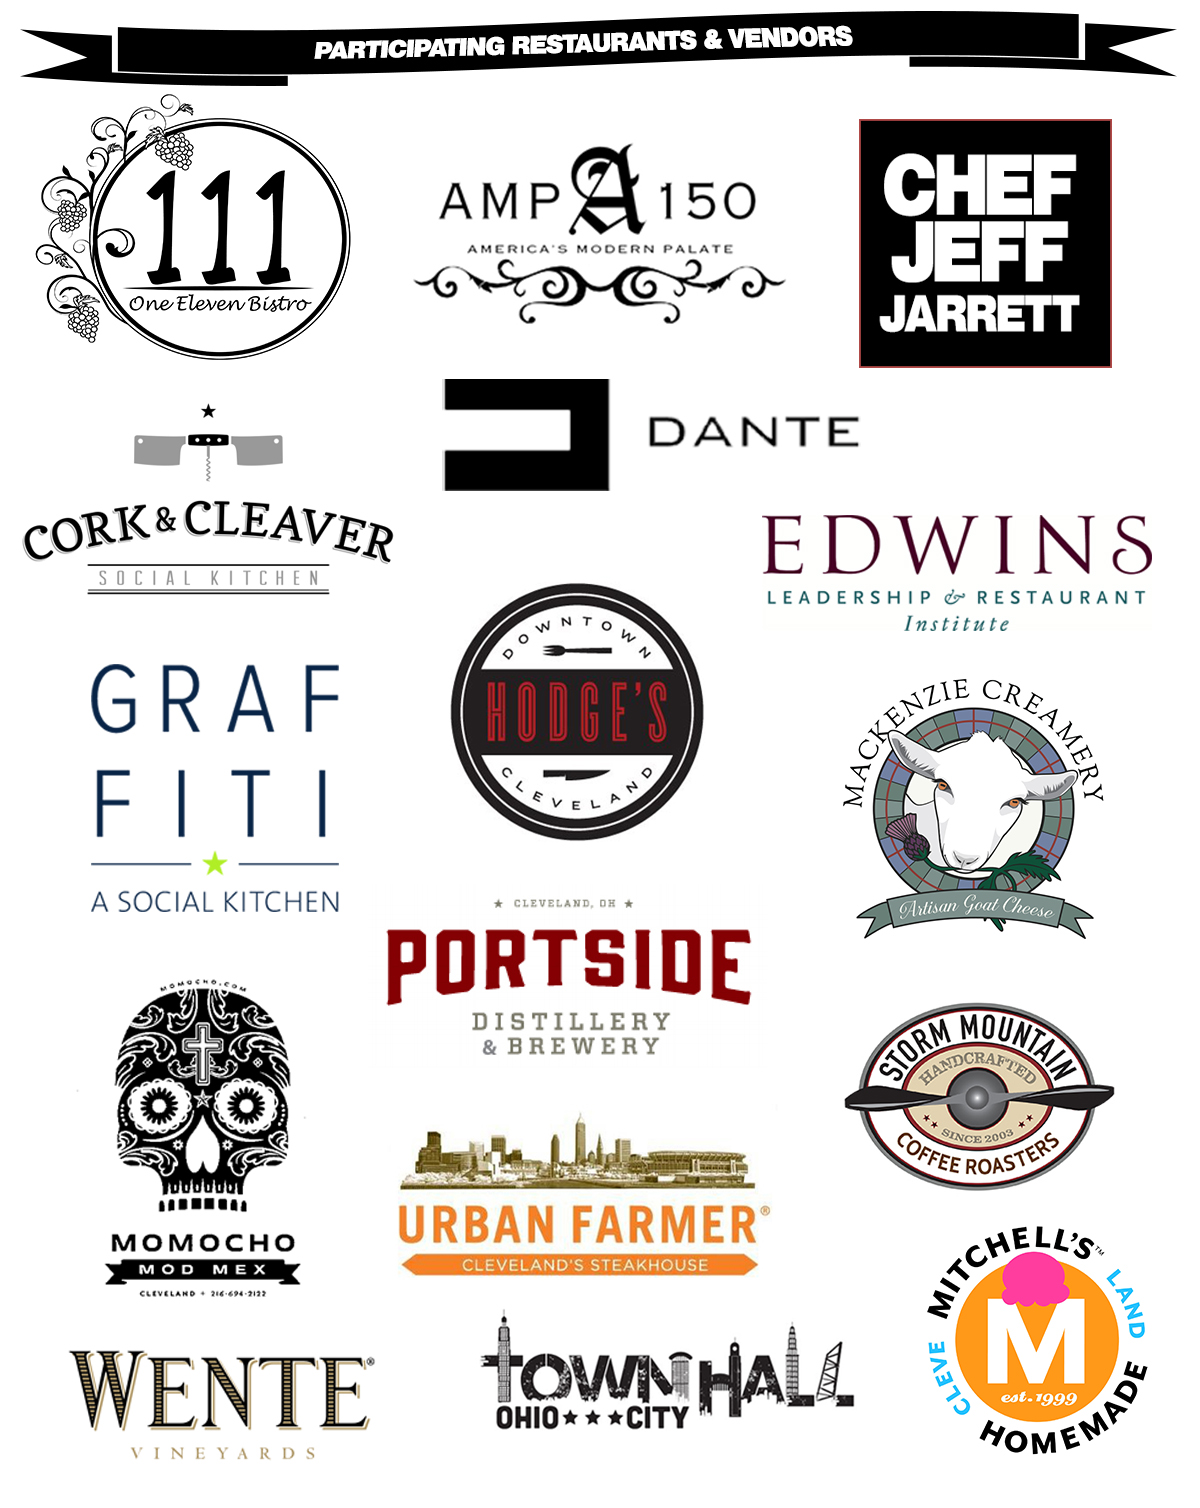 Veggie U Food and Wine Celebration Participating Restaurants